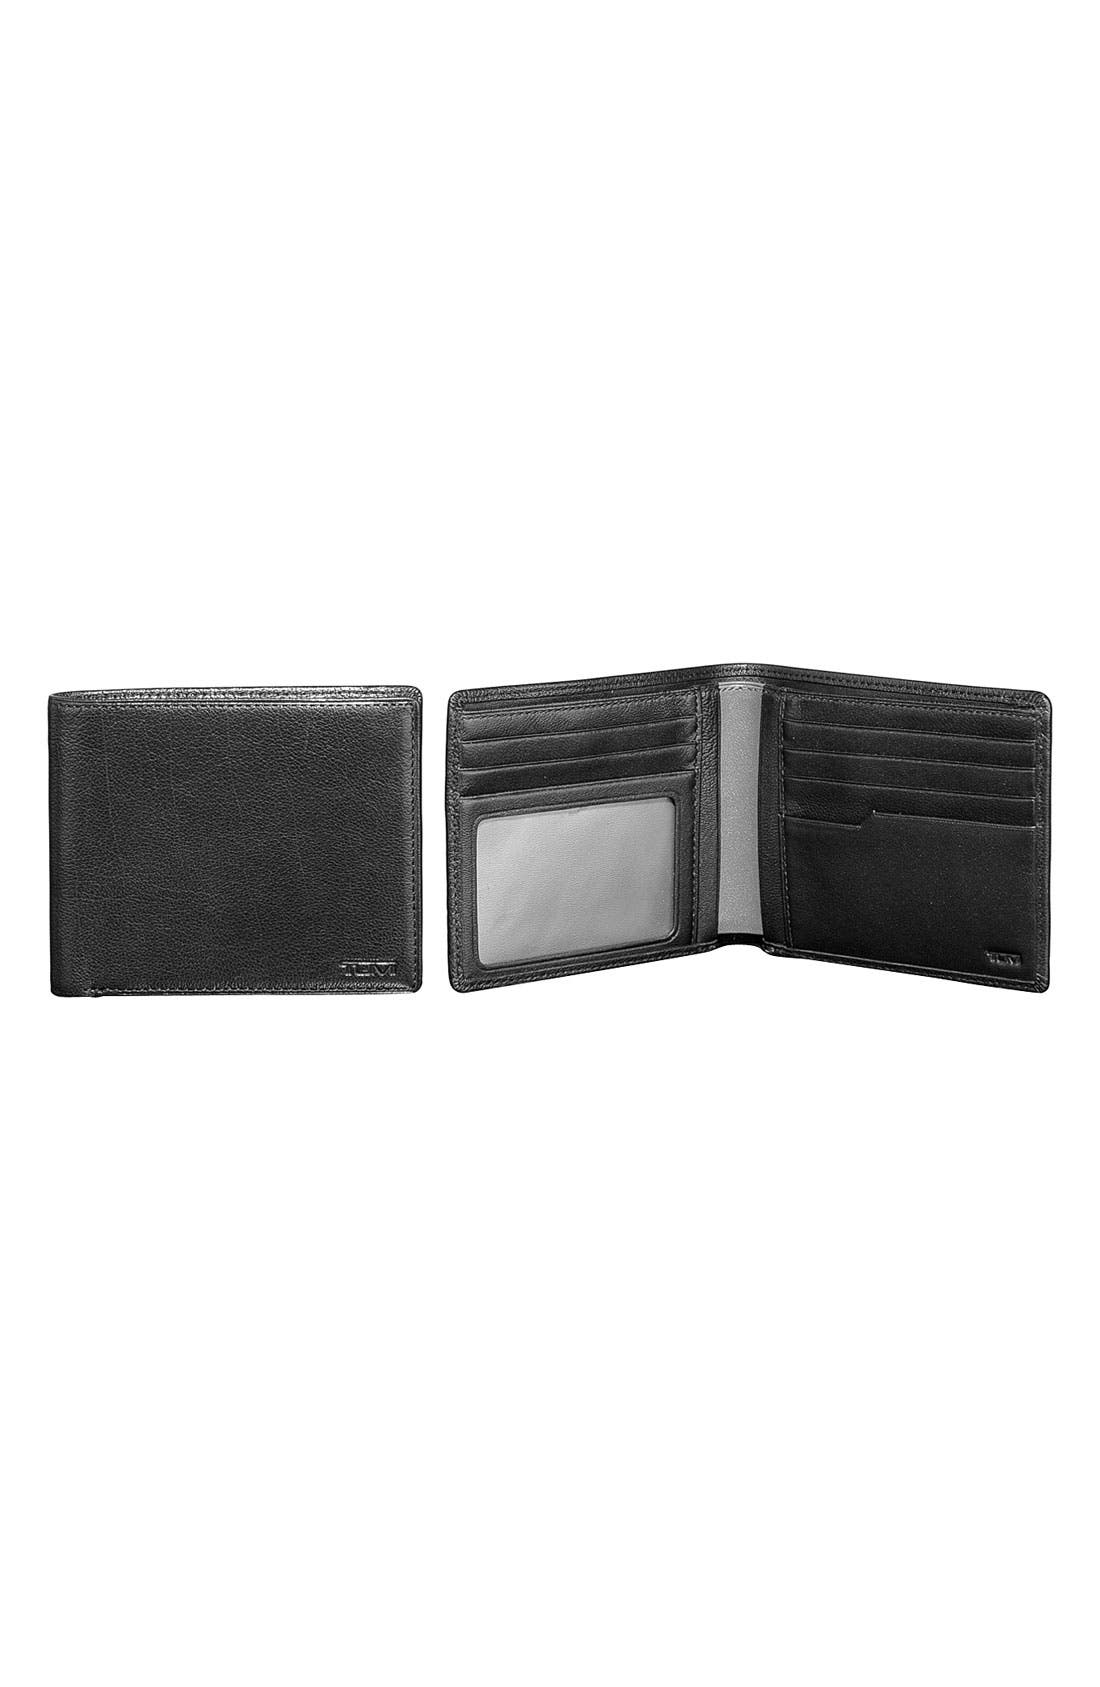 Alternate Image 1 Selected - Tumi 'Sierra - Global' Double Billfold ID Wallet